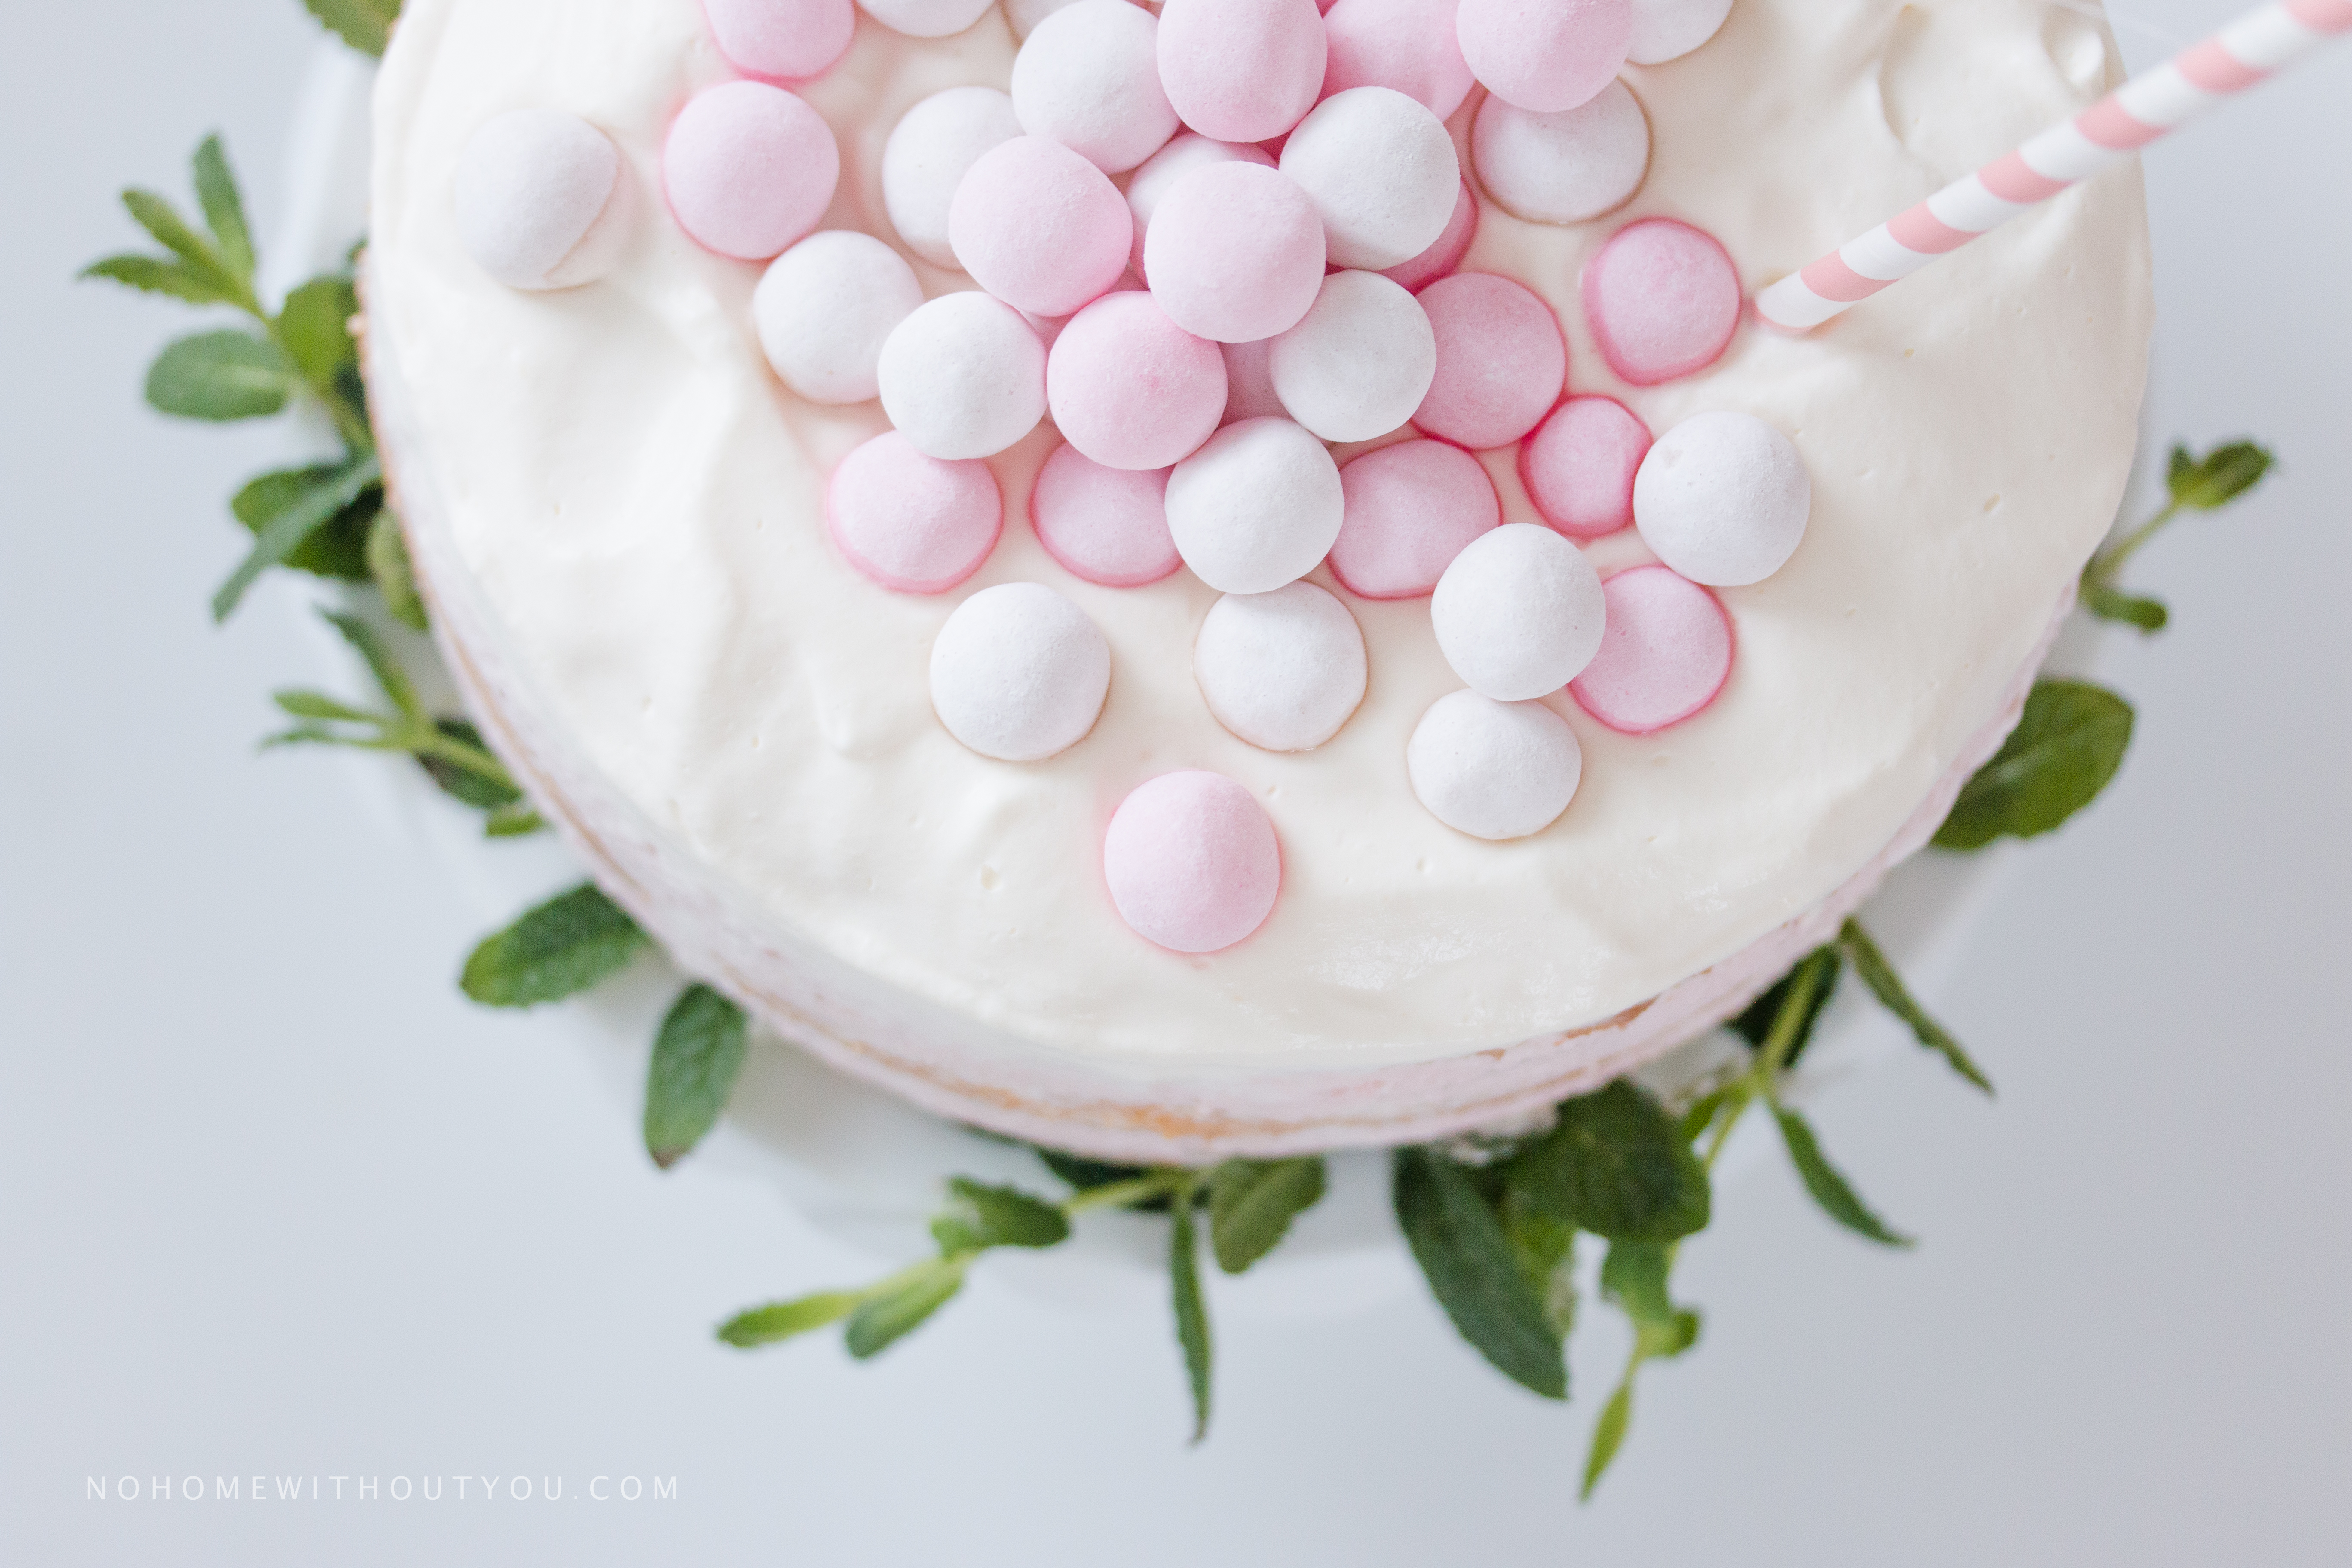 Strawberry Naked Cake - No home without you blog (6 of 13)